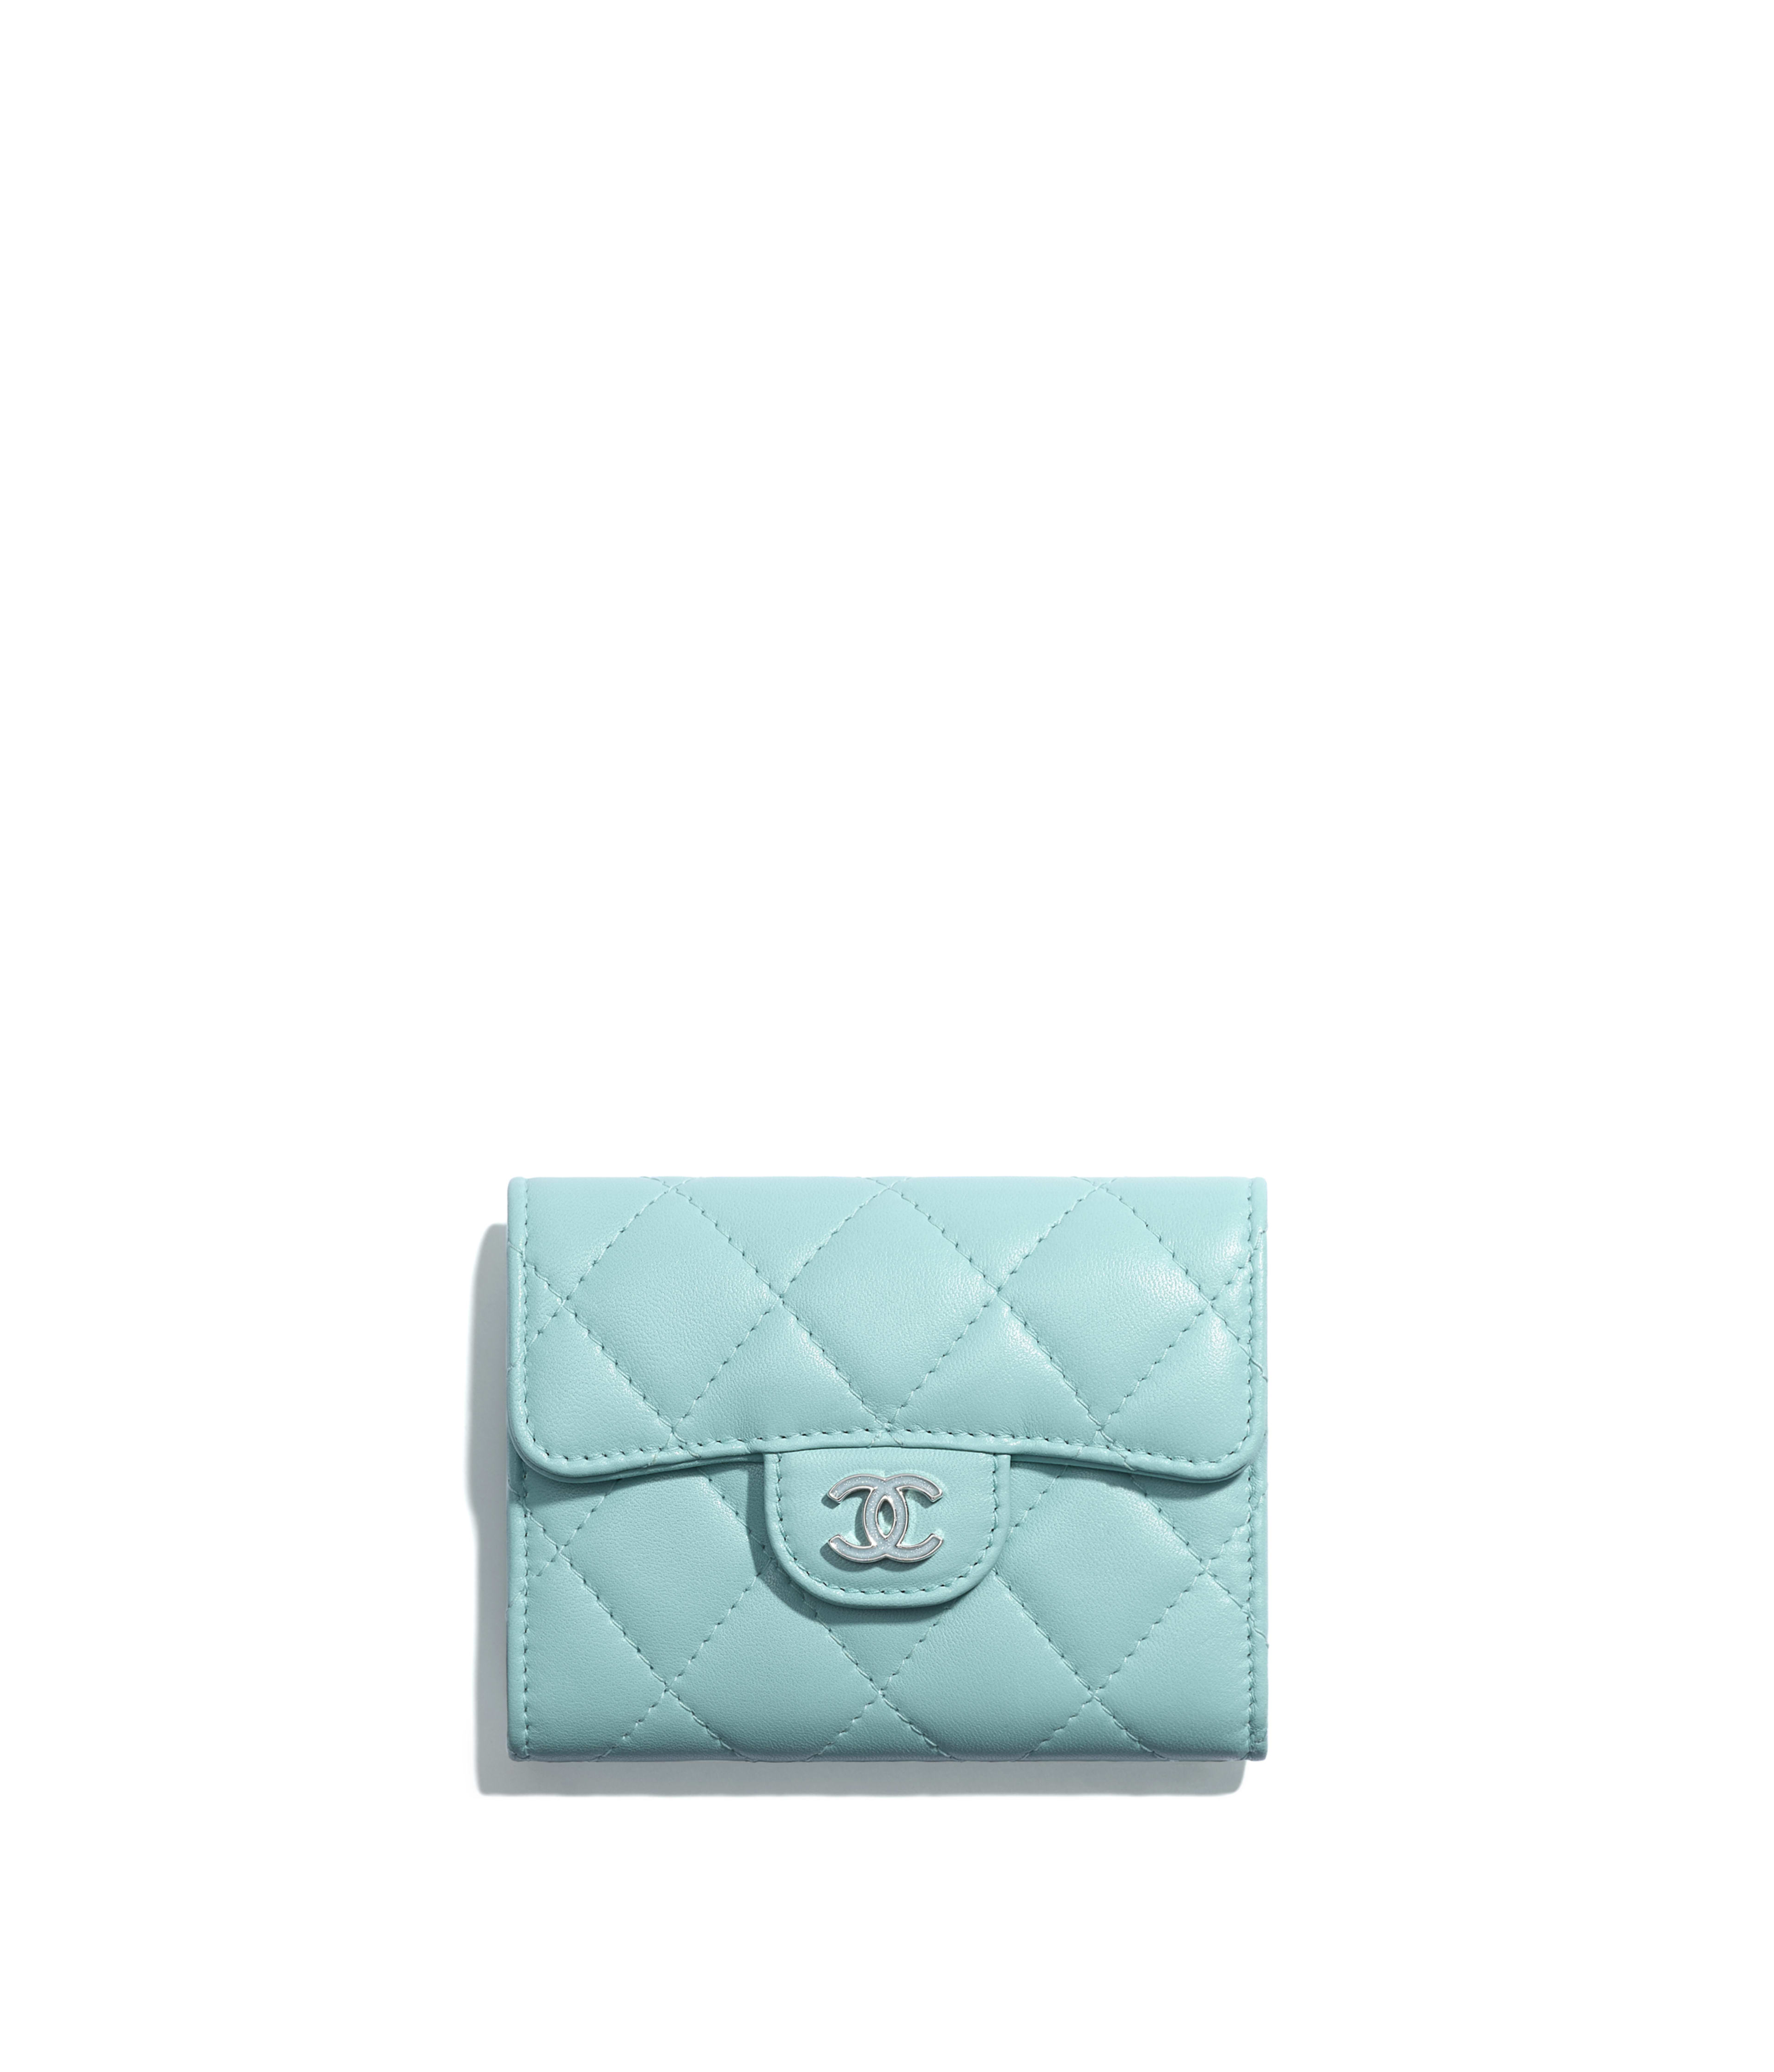 636dd63f9dea Classic Flap Coin Purse Lambskin & Lacquered Silver-Tone Metal, Light Blue  Ref. A31504Y255495B644